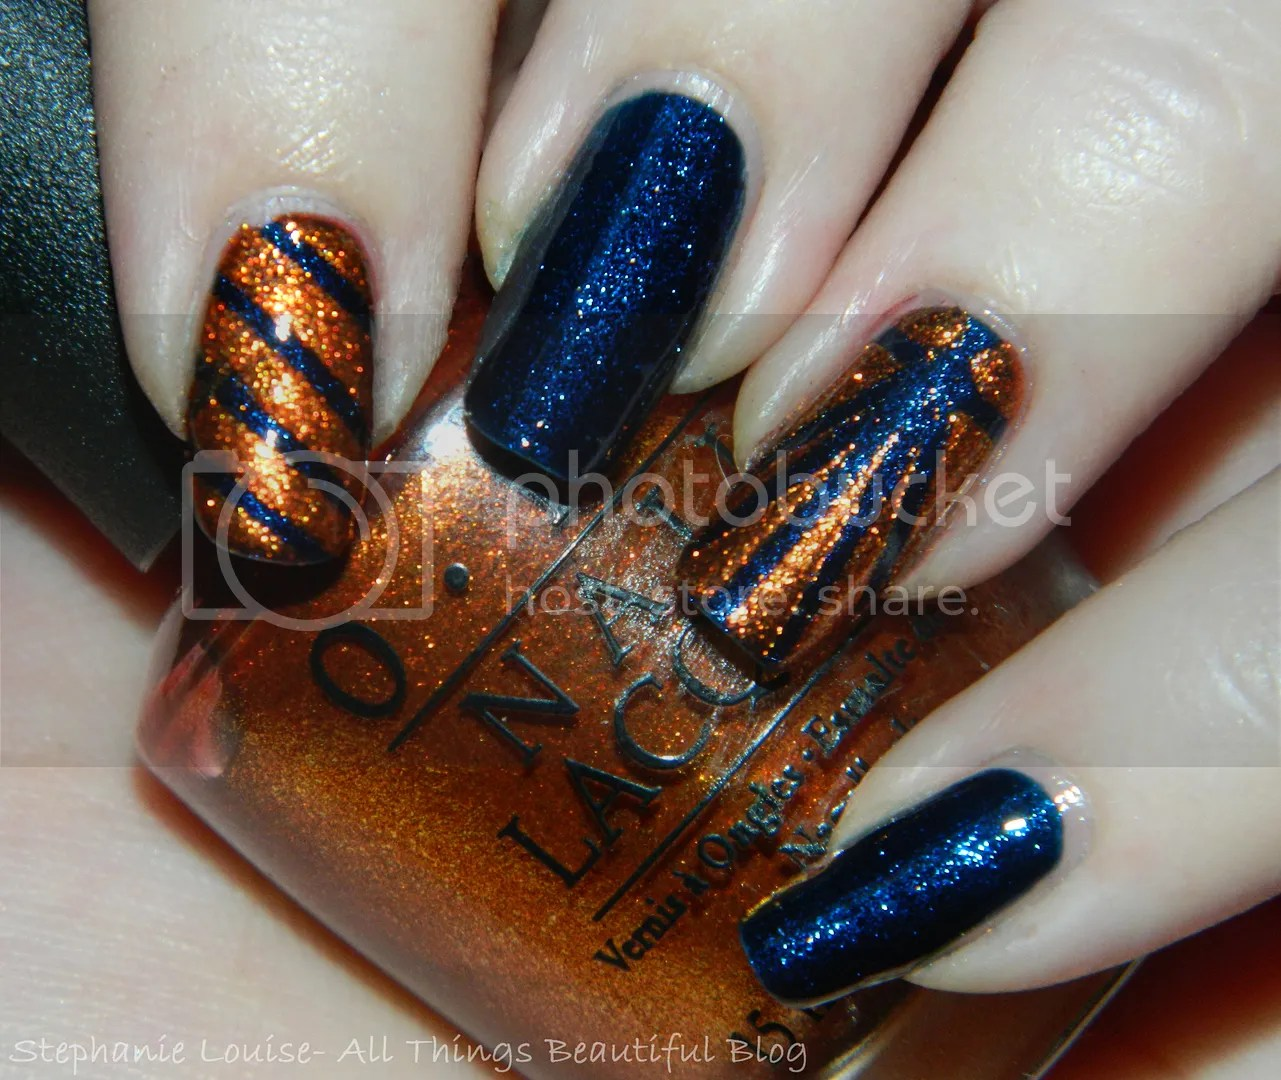 Simple Fall Nail Designs: OPI Sprung + Color Club Williamsburg Easy Fall Nail Art